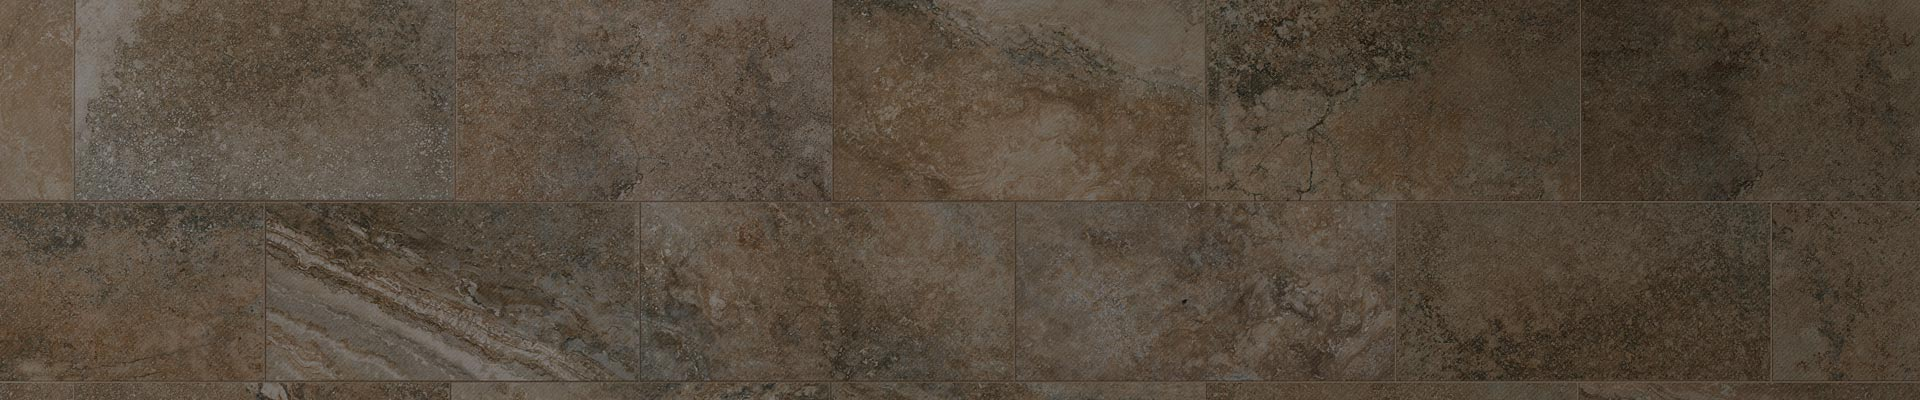 New Technology Gives You The Look Of Travertine Without The Cost